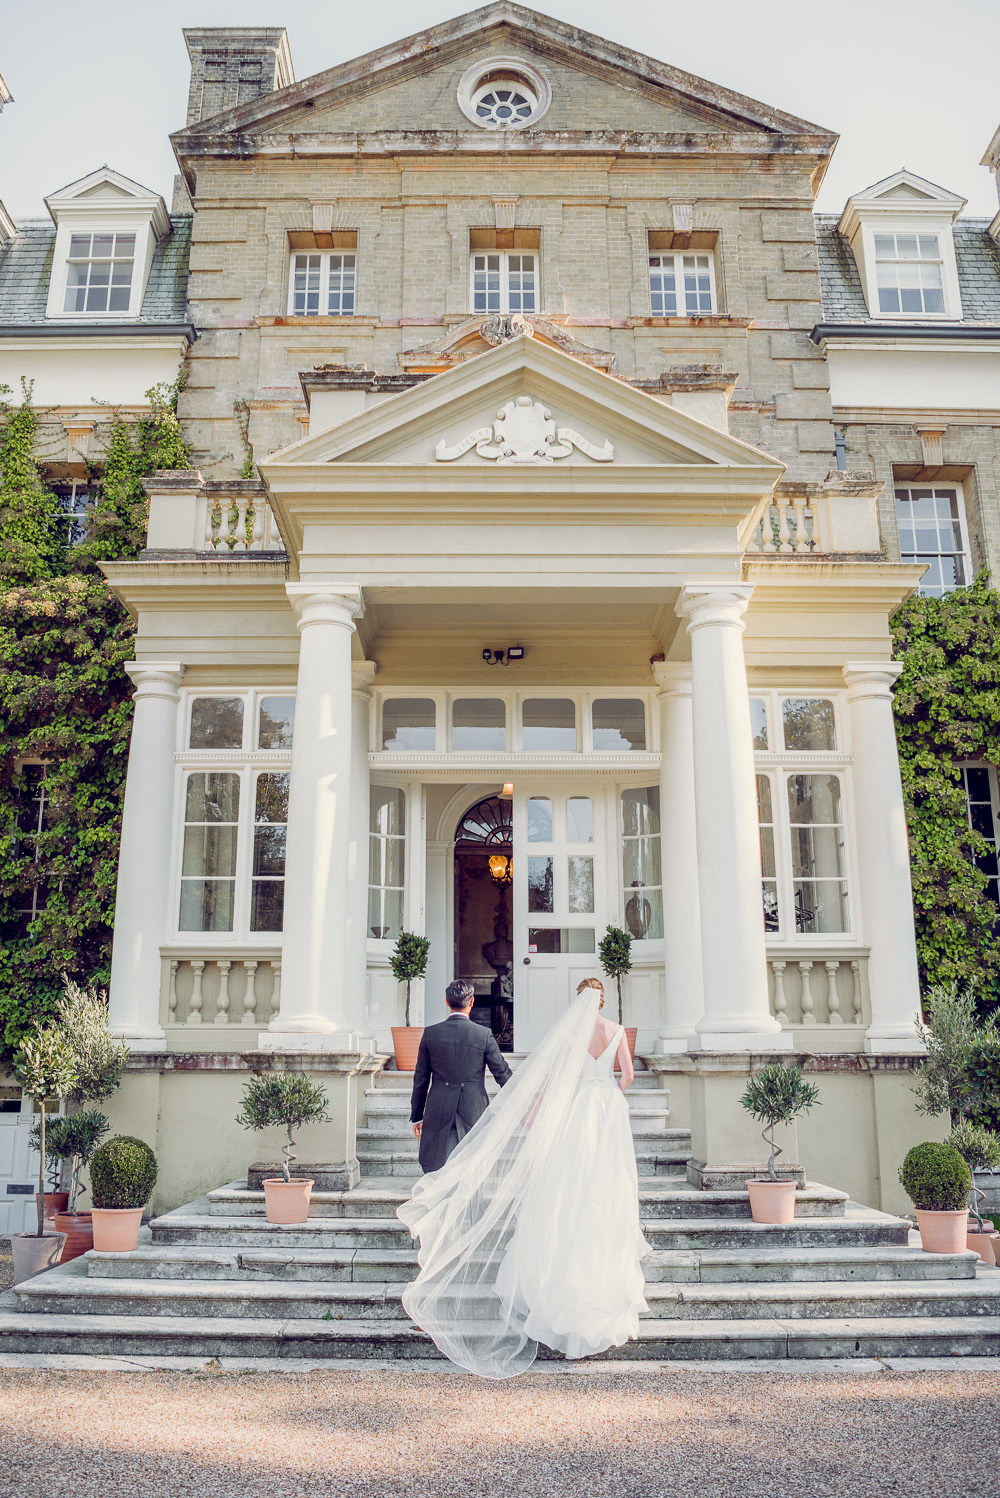 Plyewell Park wedding front of house